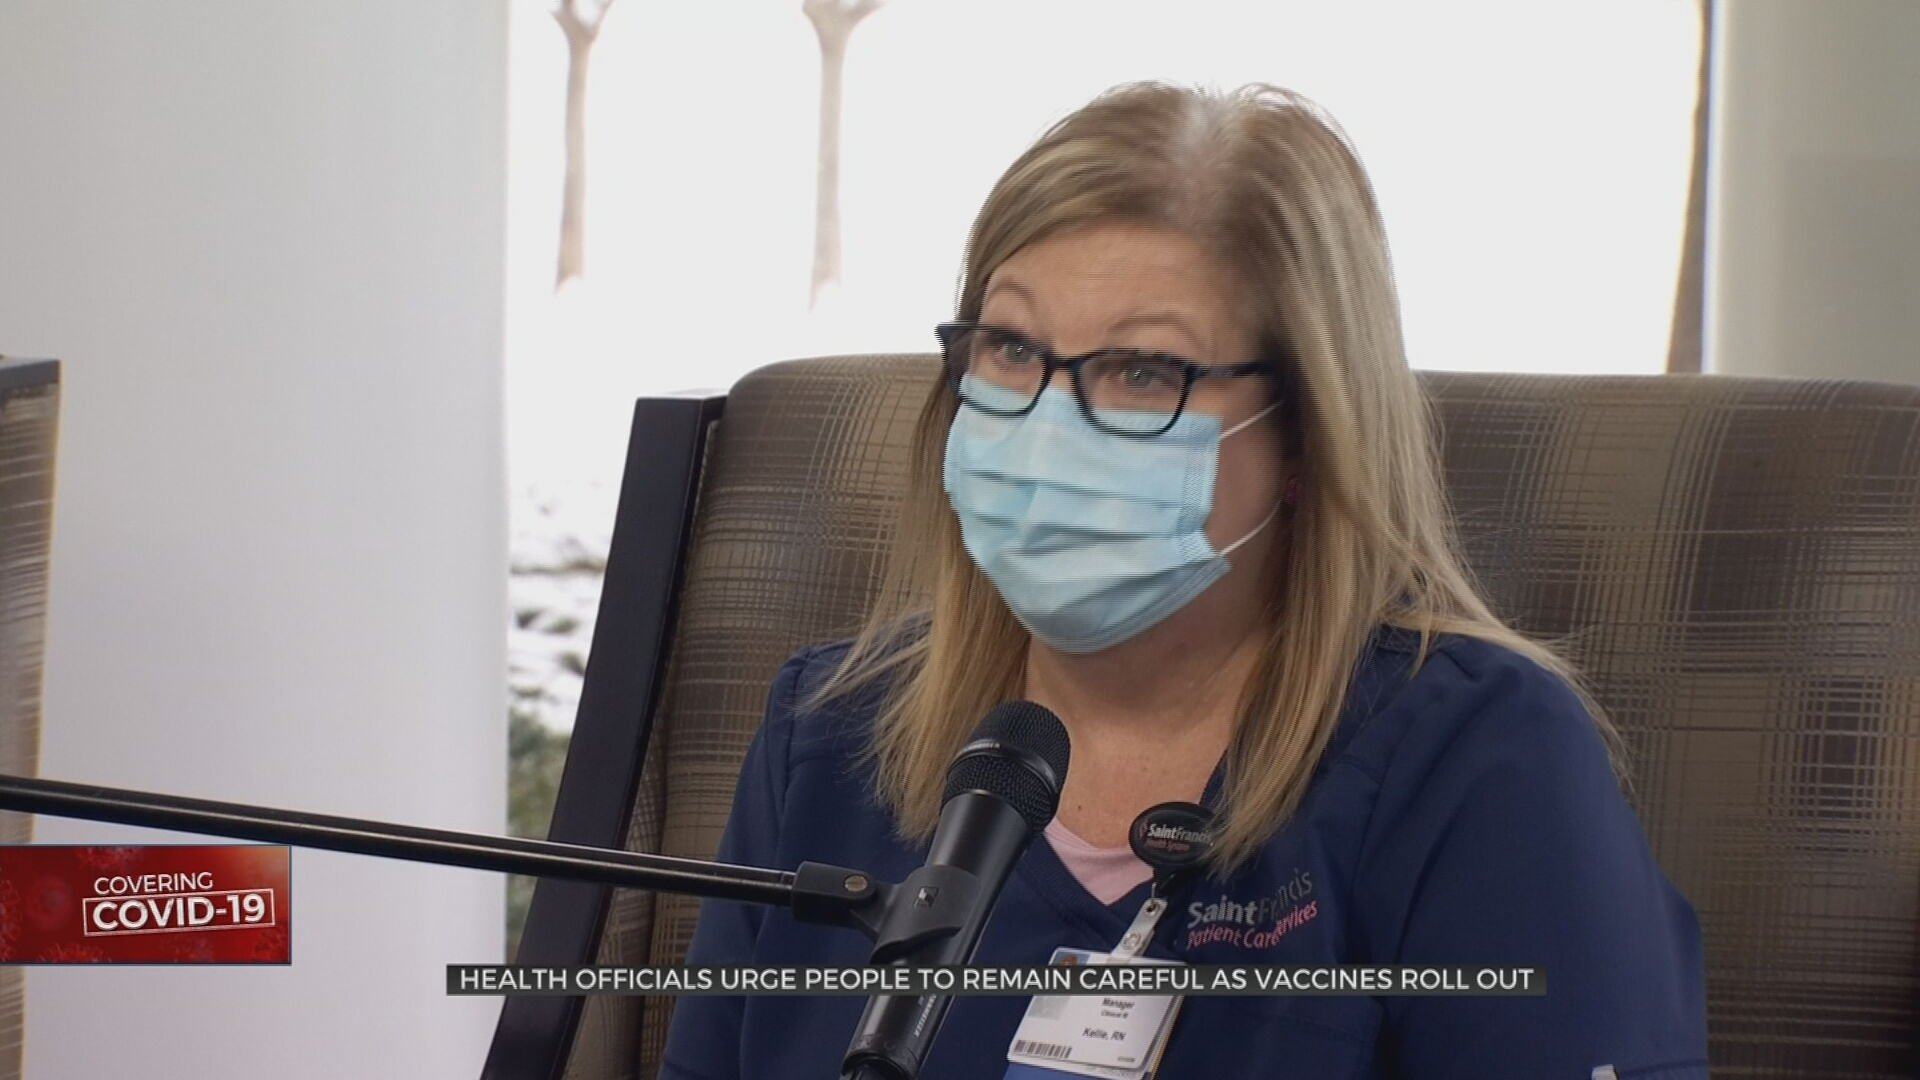 Tulsa Health Official Pleads People To Keep Guard Up Even As Vaccines Roll Out